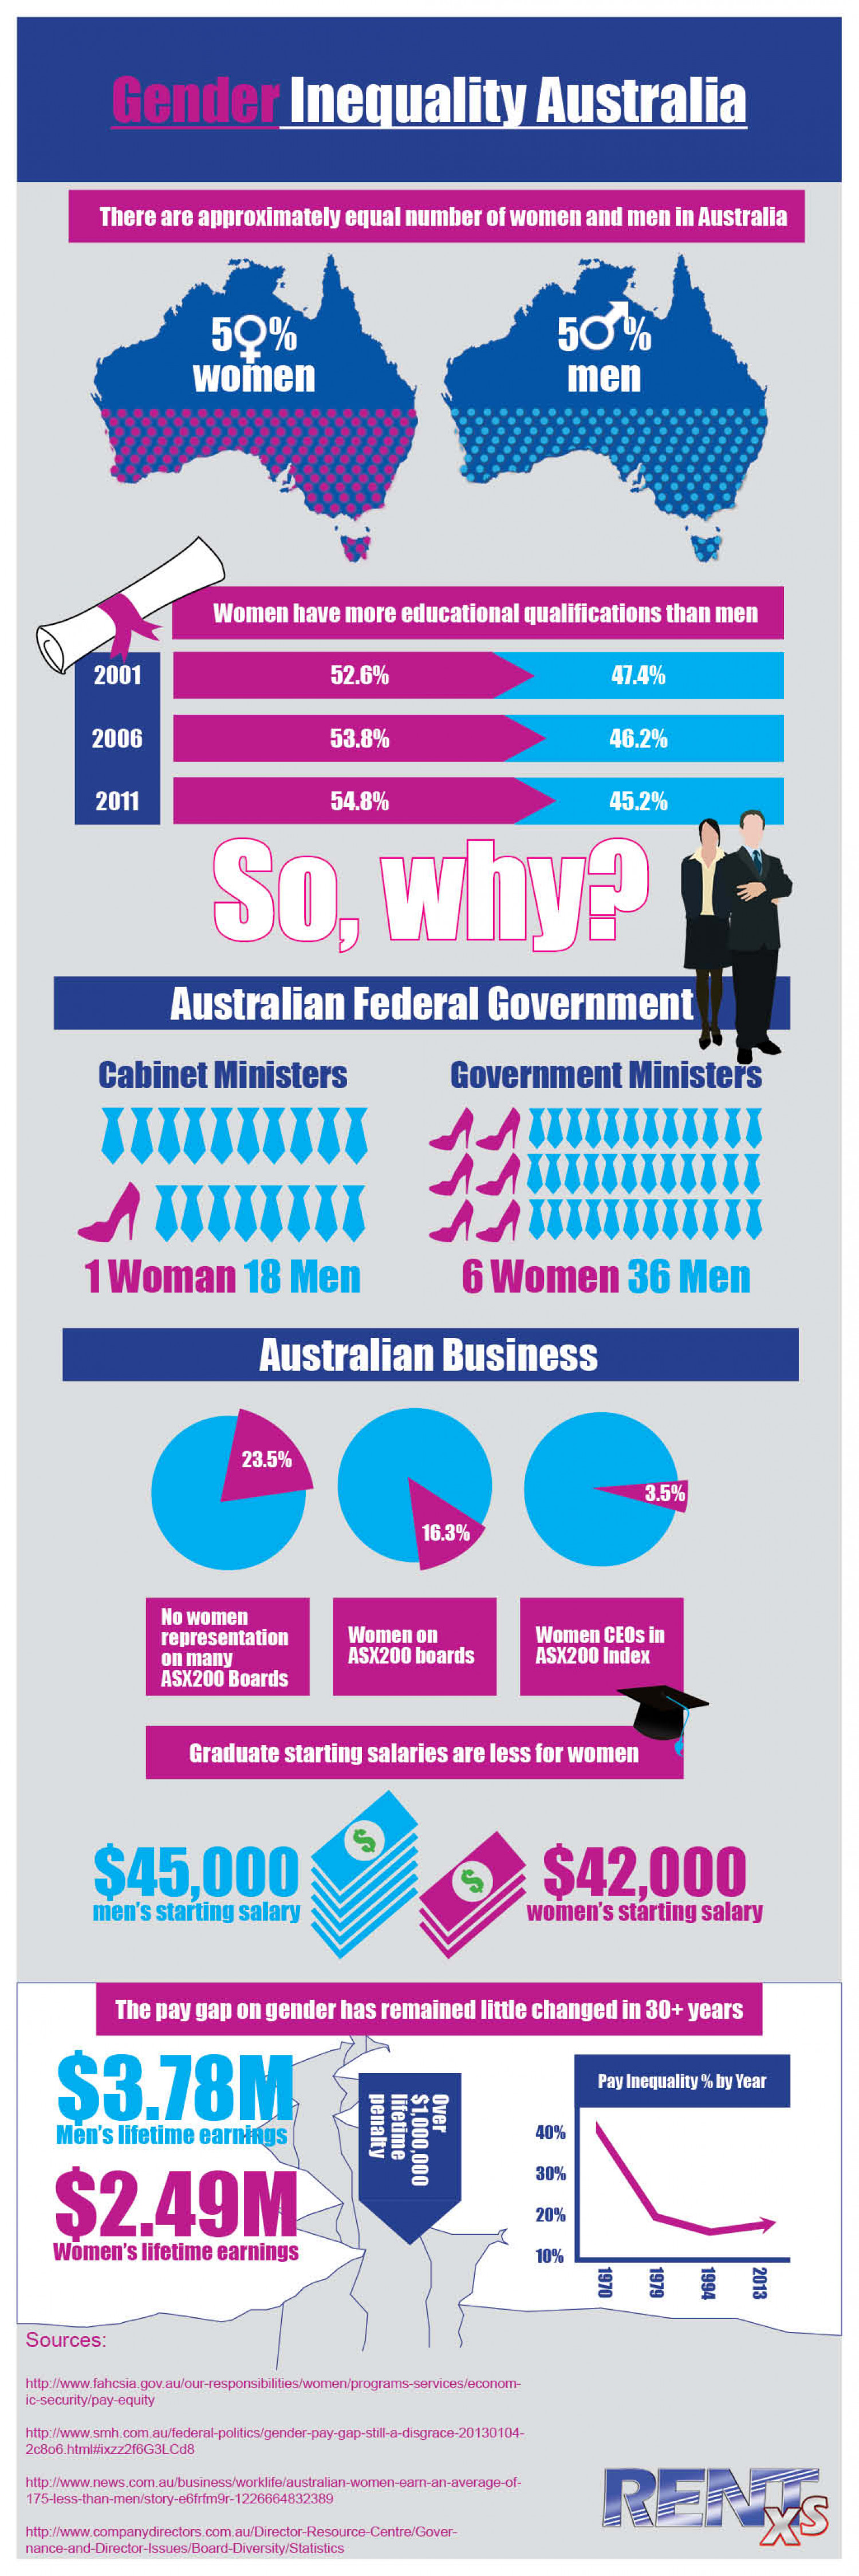 Gender Inequality Australia Infographic